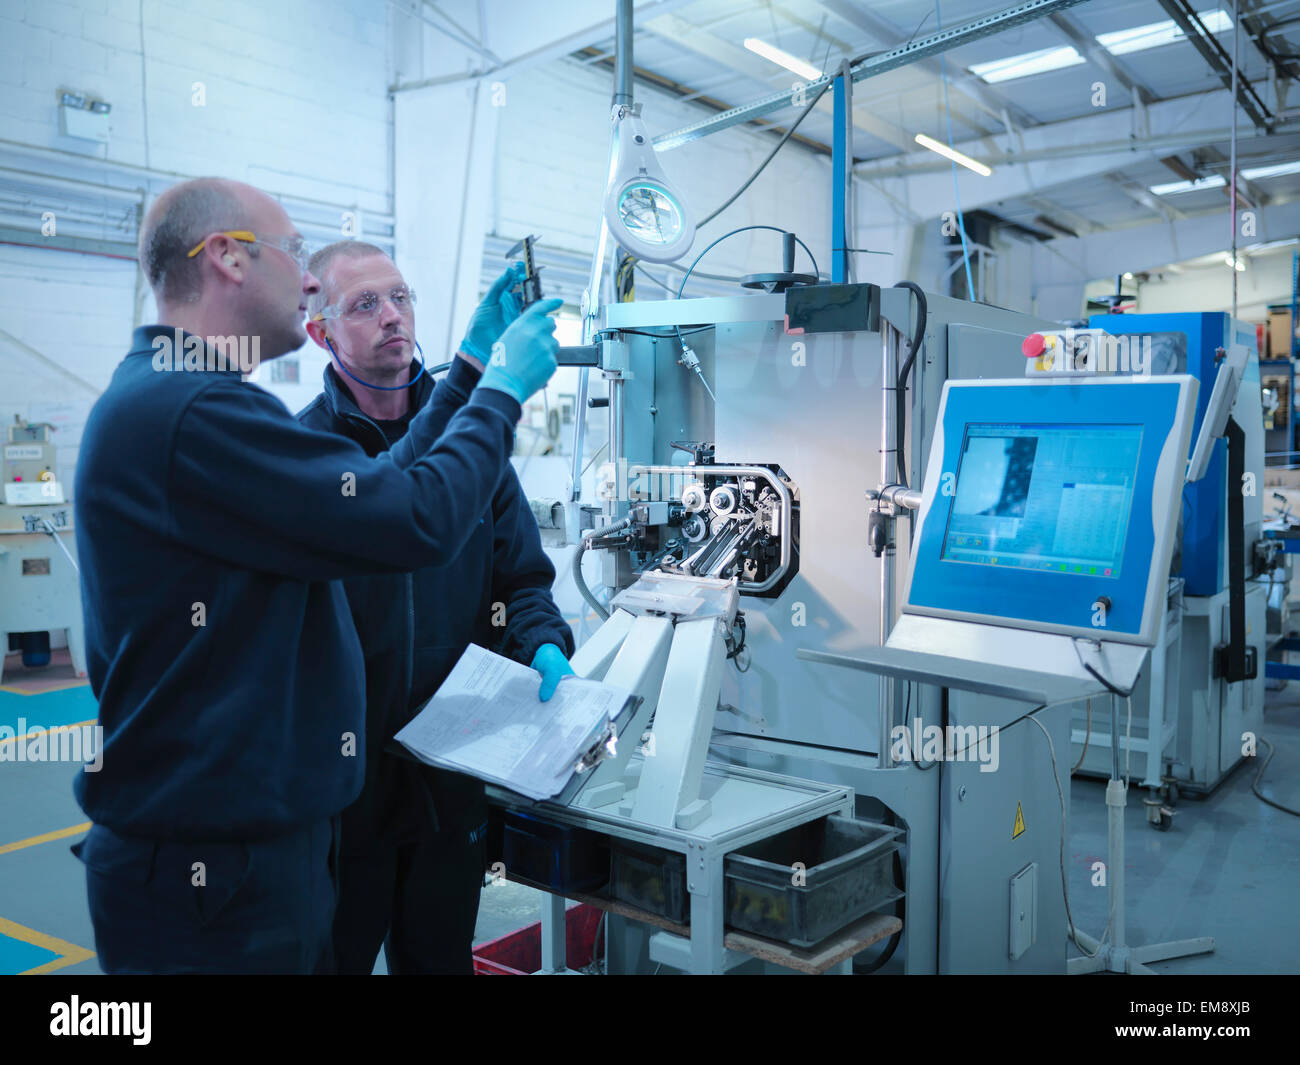 Engineers manufacturing automotive parts - Stock Image